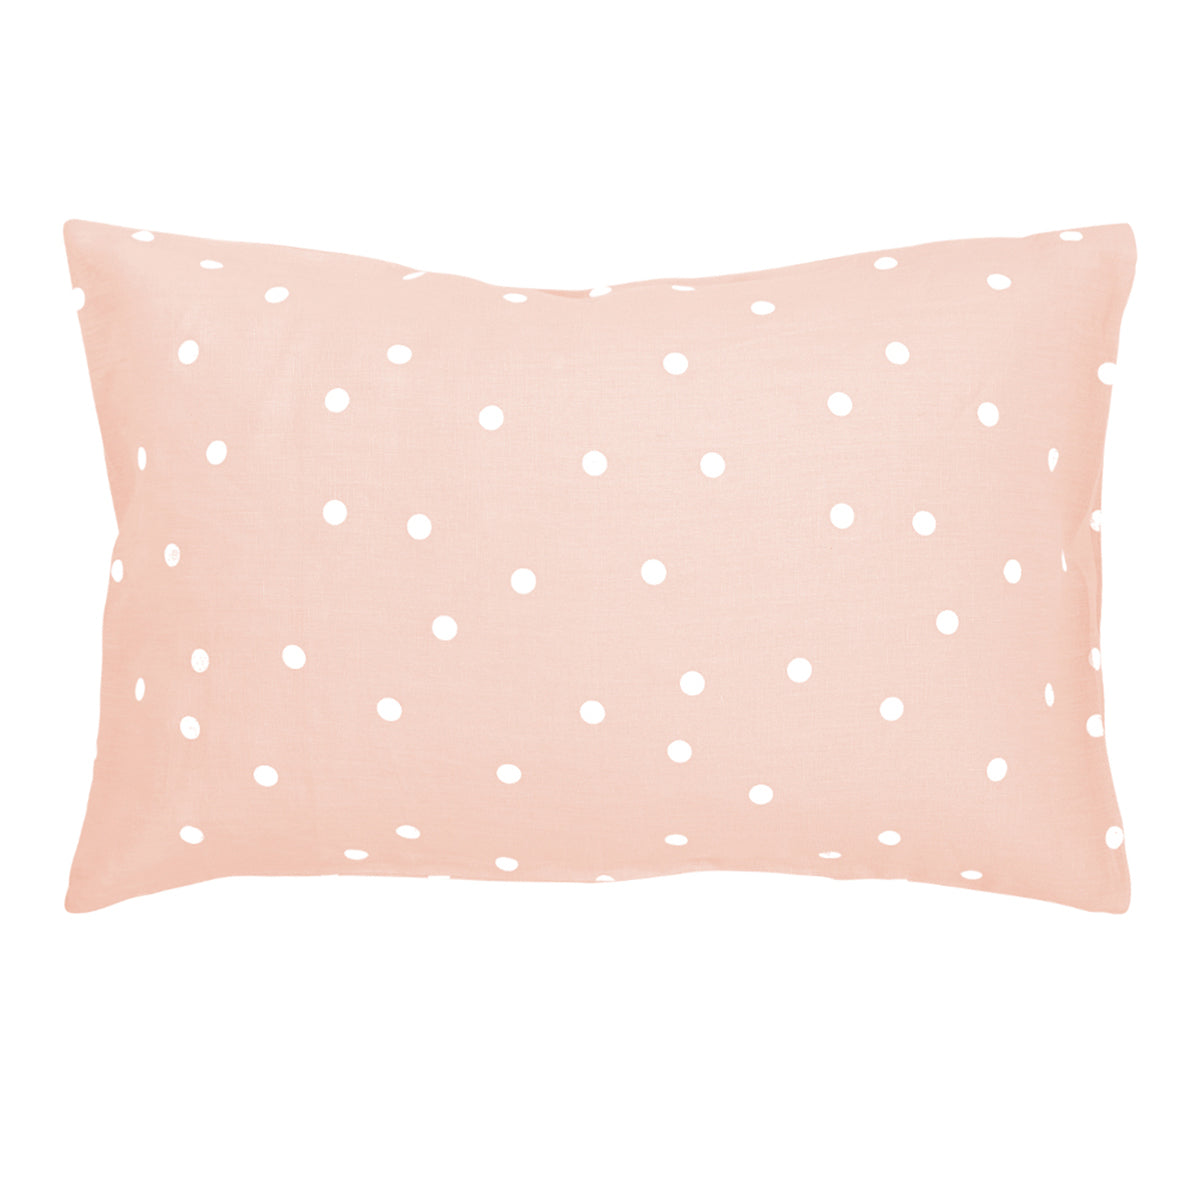 Blush Linen Polkadot Pillowcase by Castle